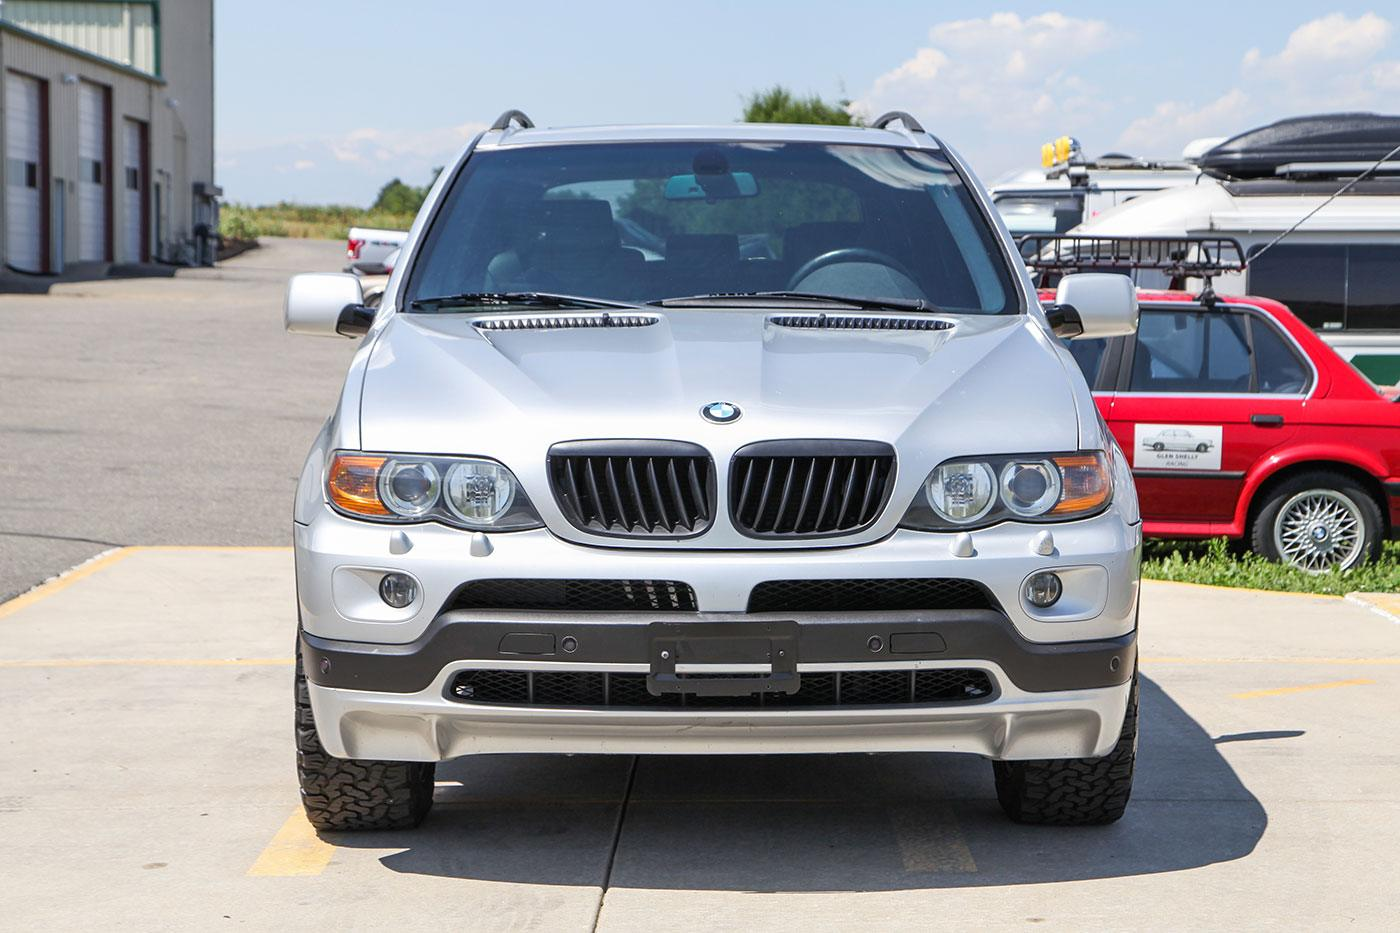 2005 BMW (E53) X5 4.8iS exterior photo